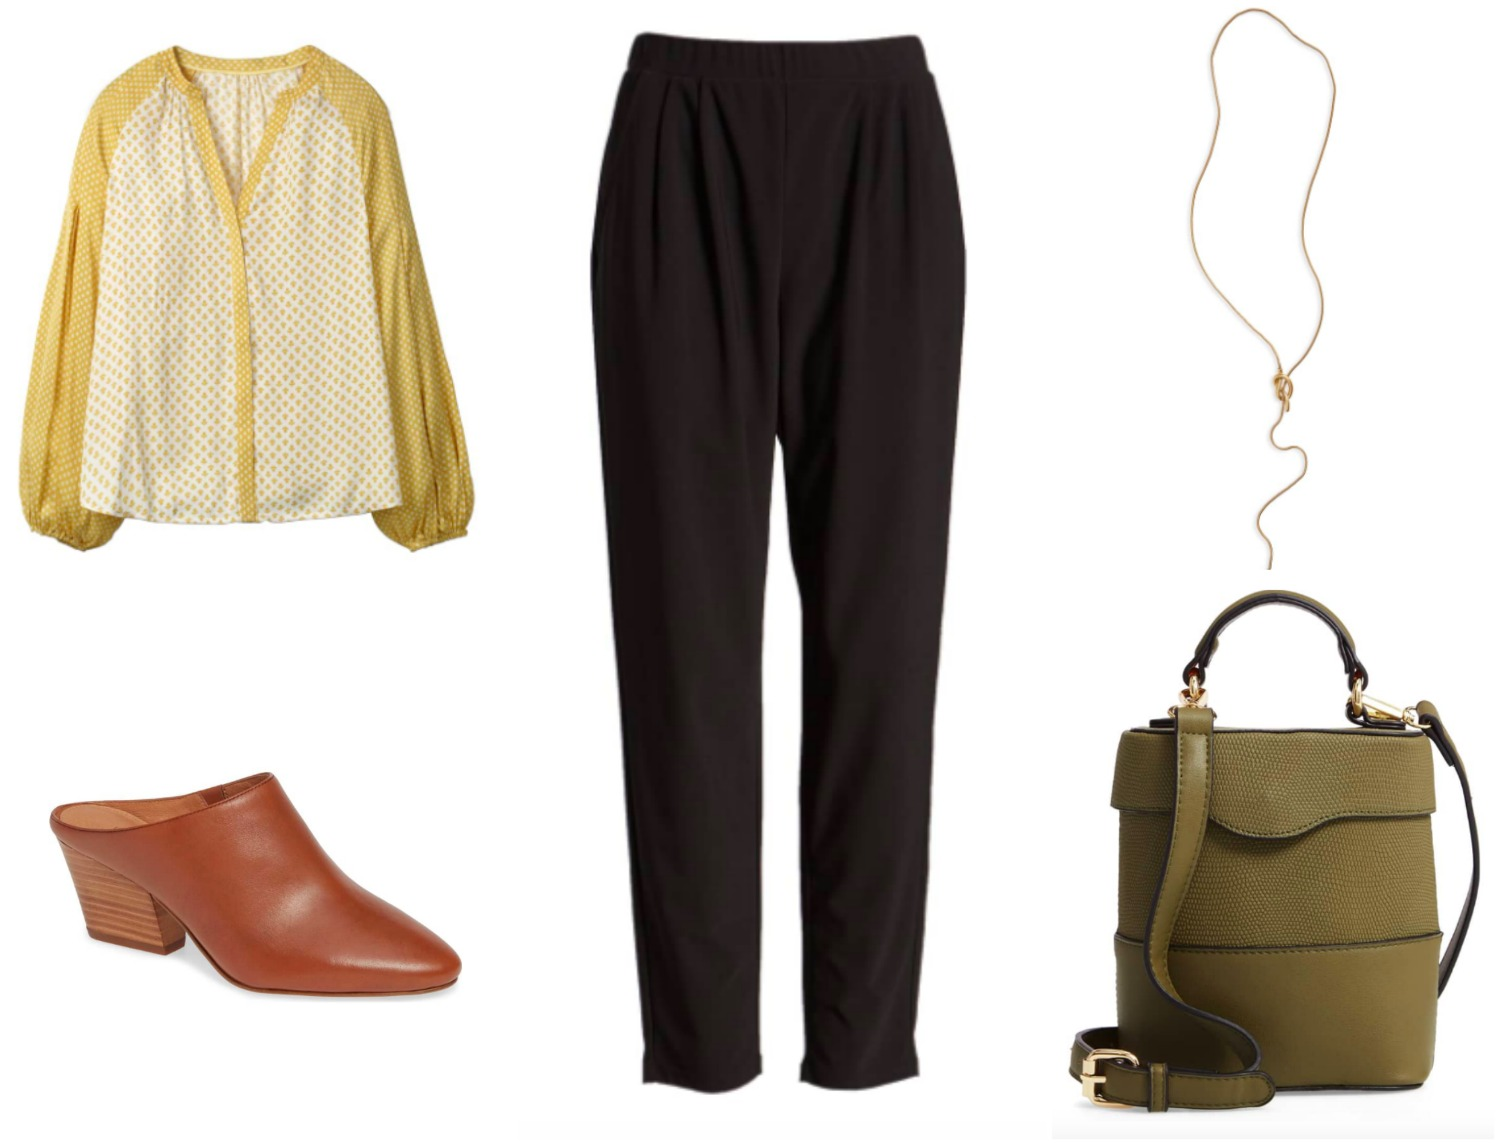 the motherchic pants for fall